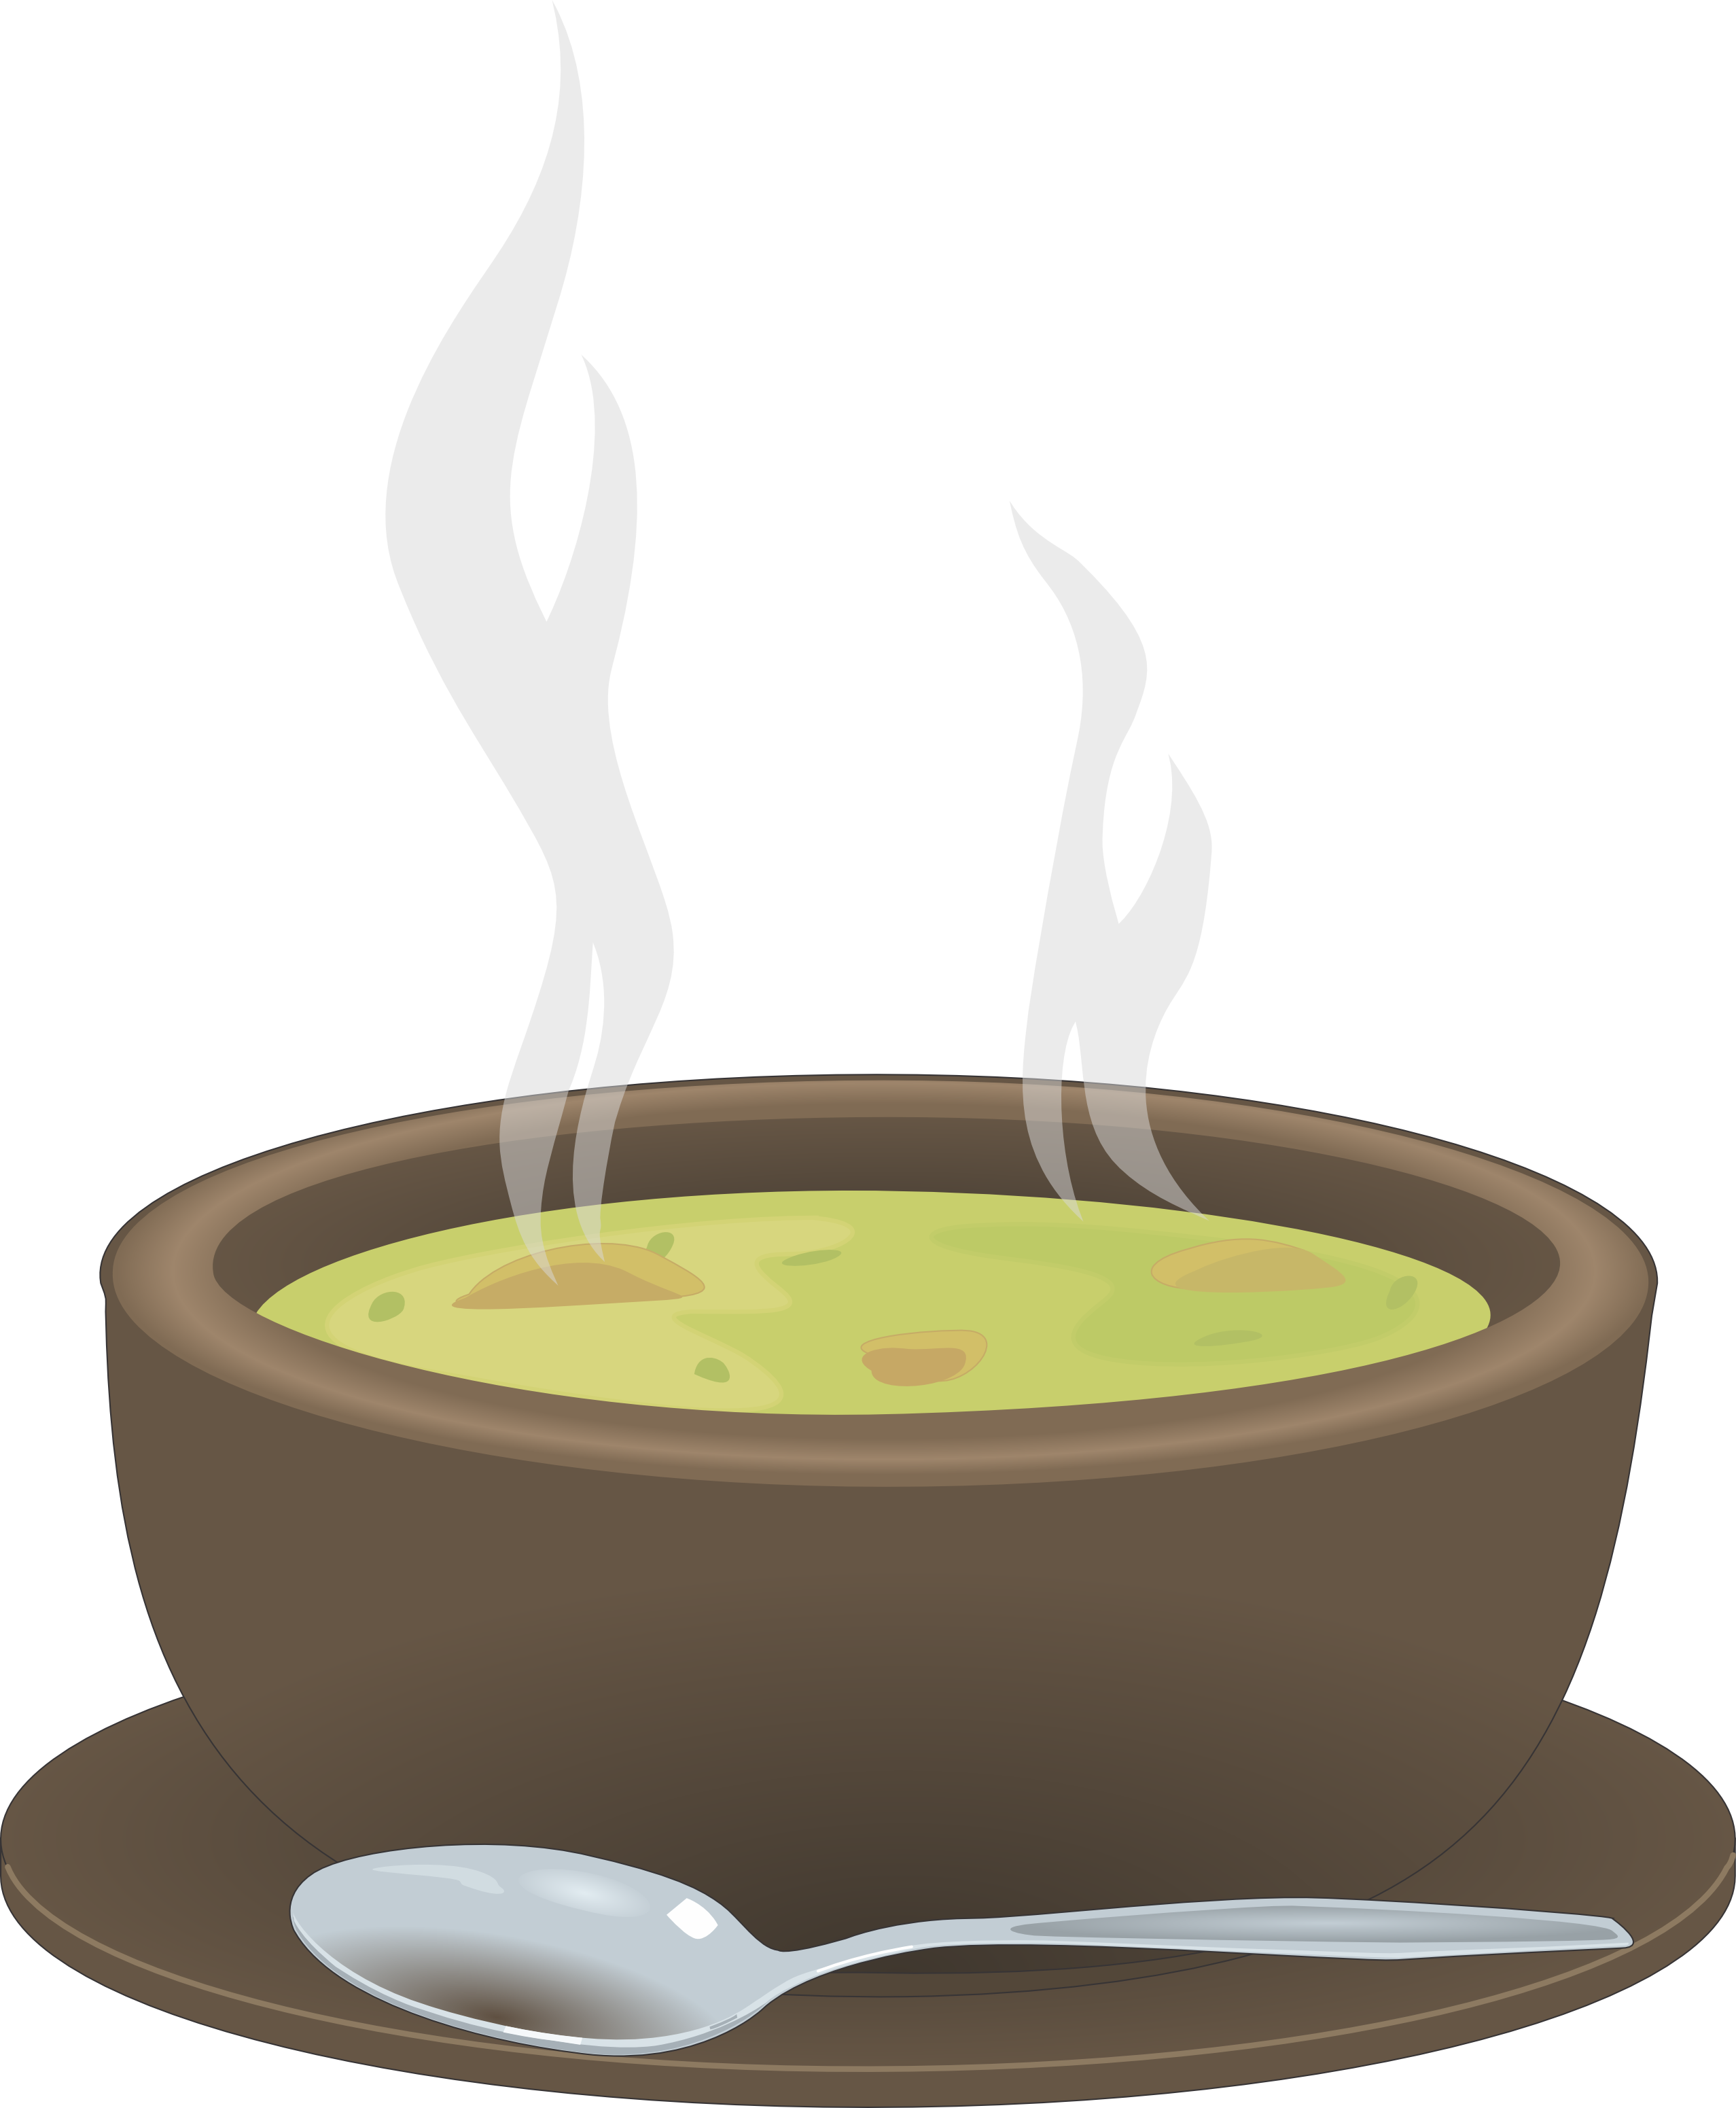 Free Soup Clipart, Download Free Clip Art, Free Clip Art on.